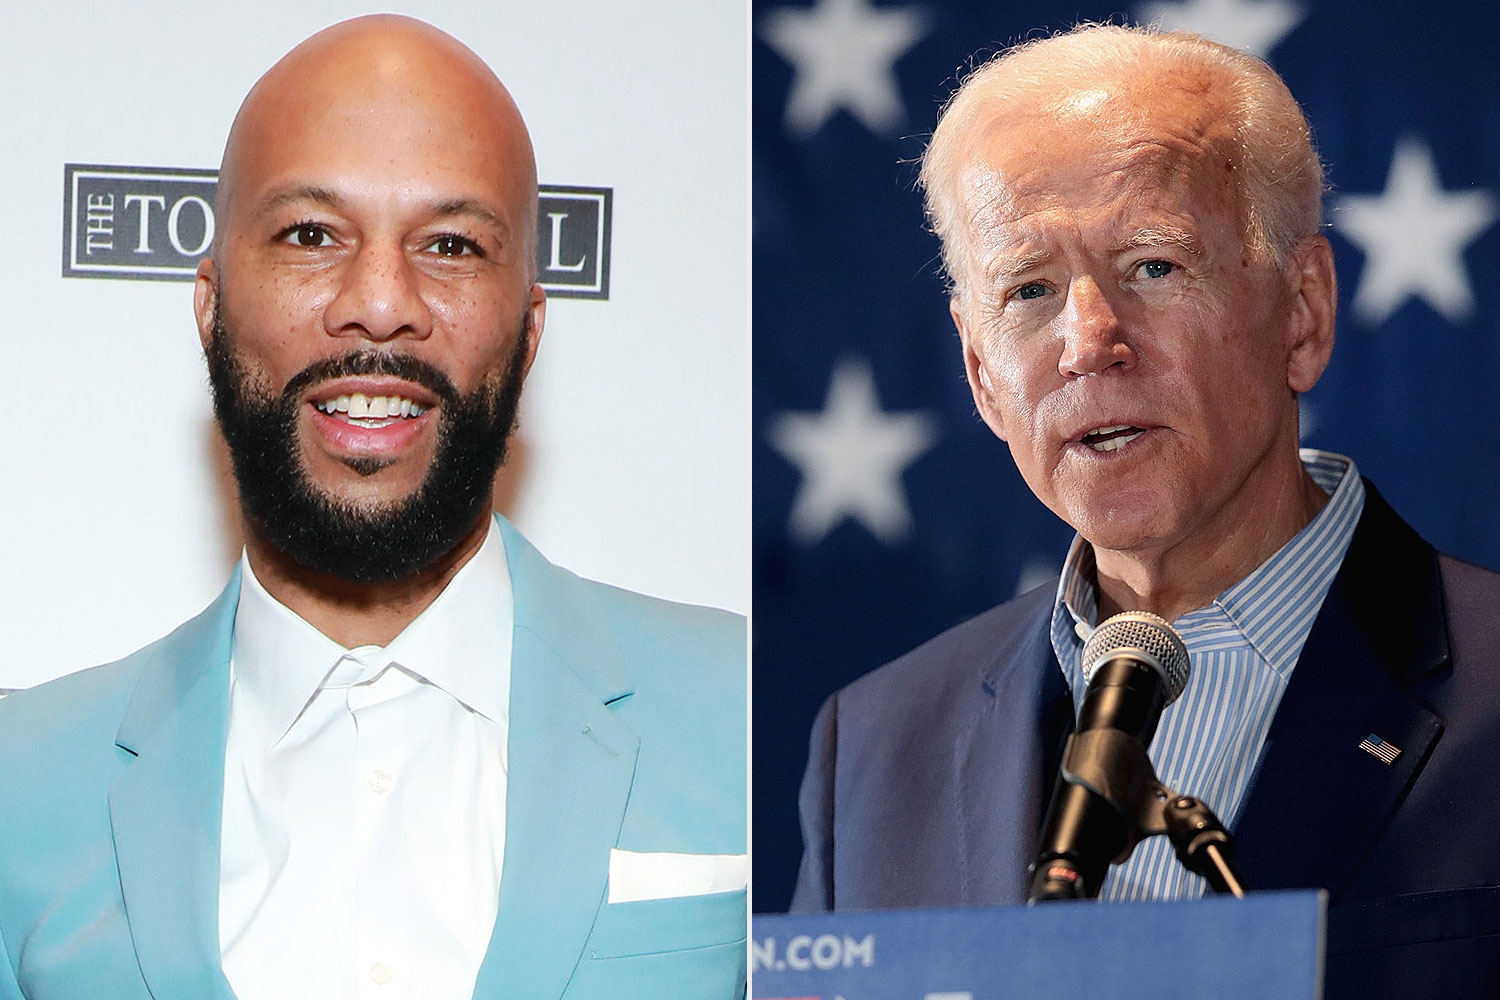 Common (left) and Joe Biden